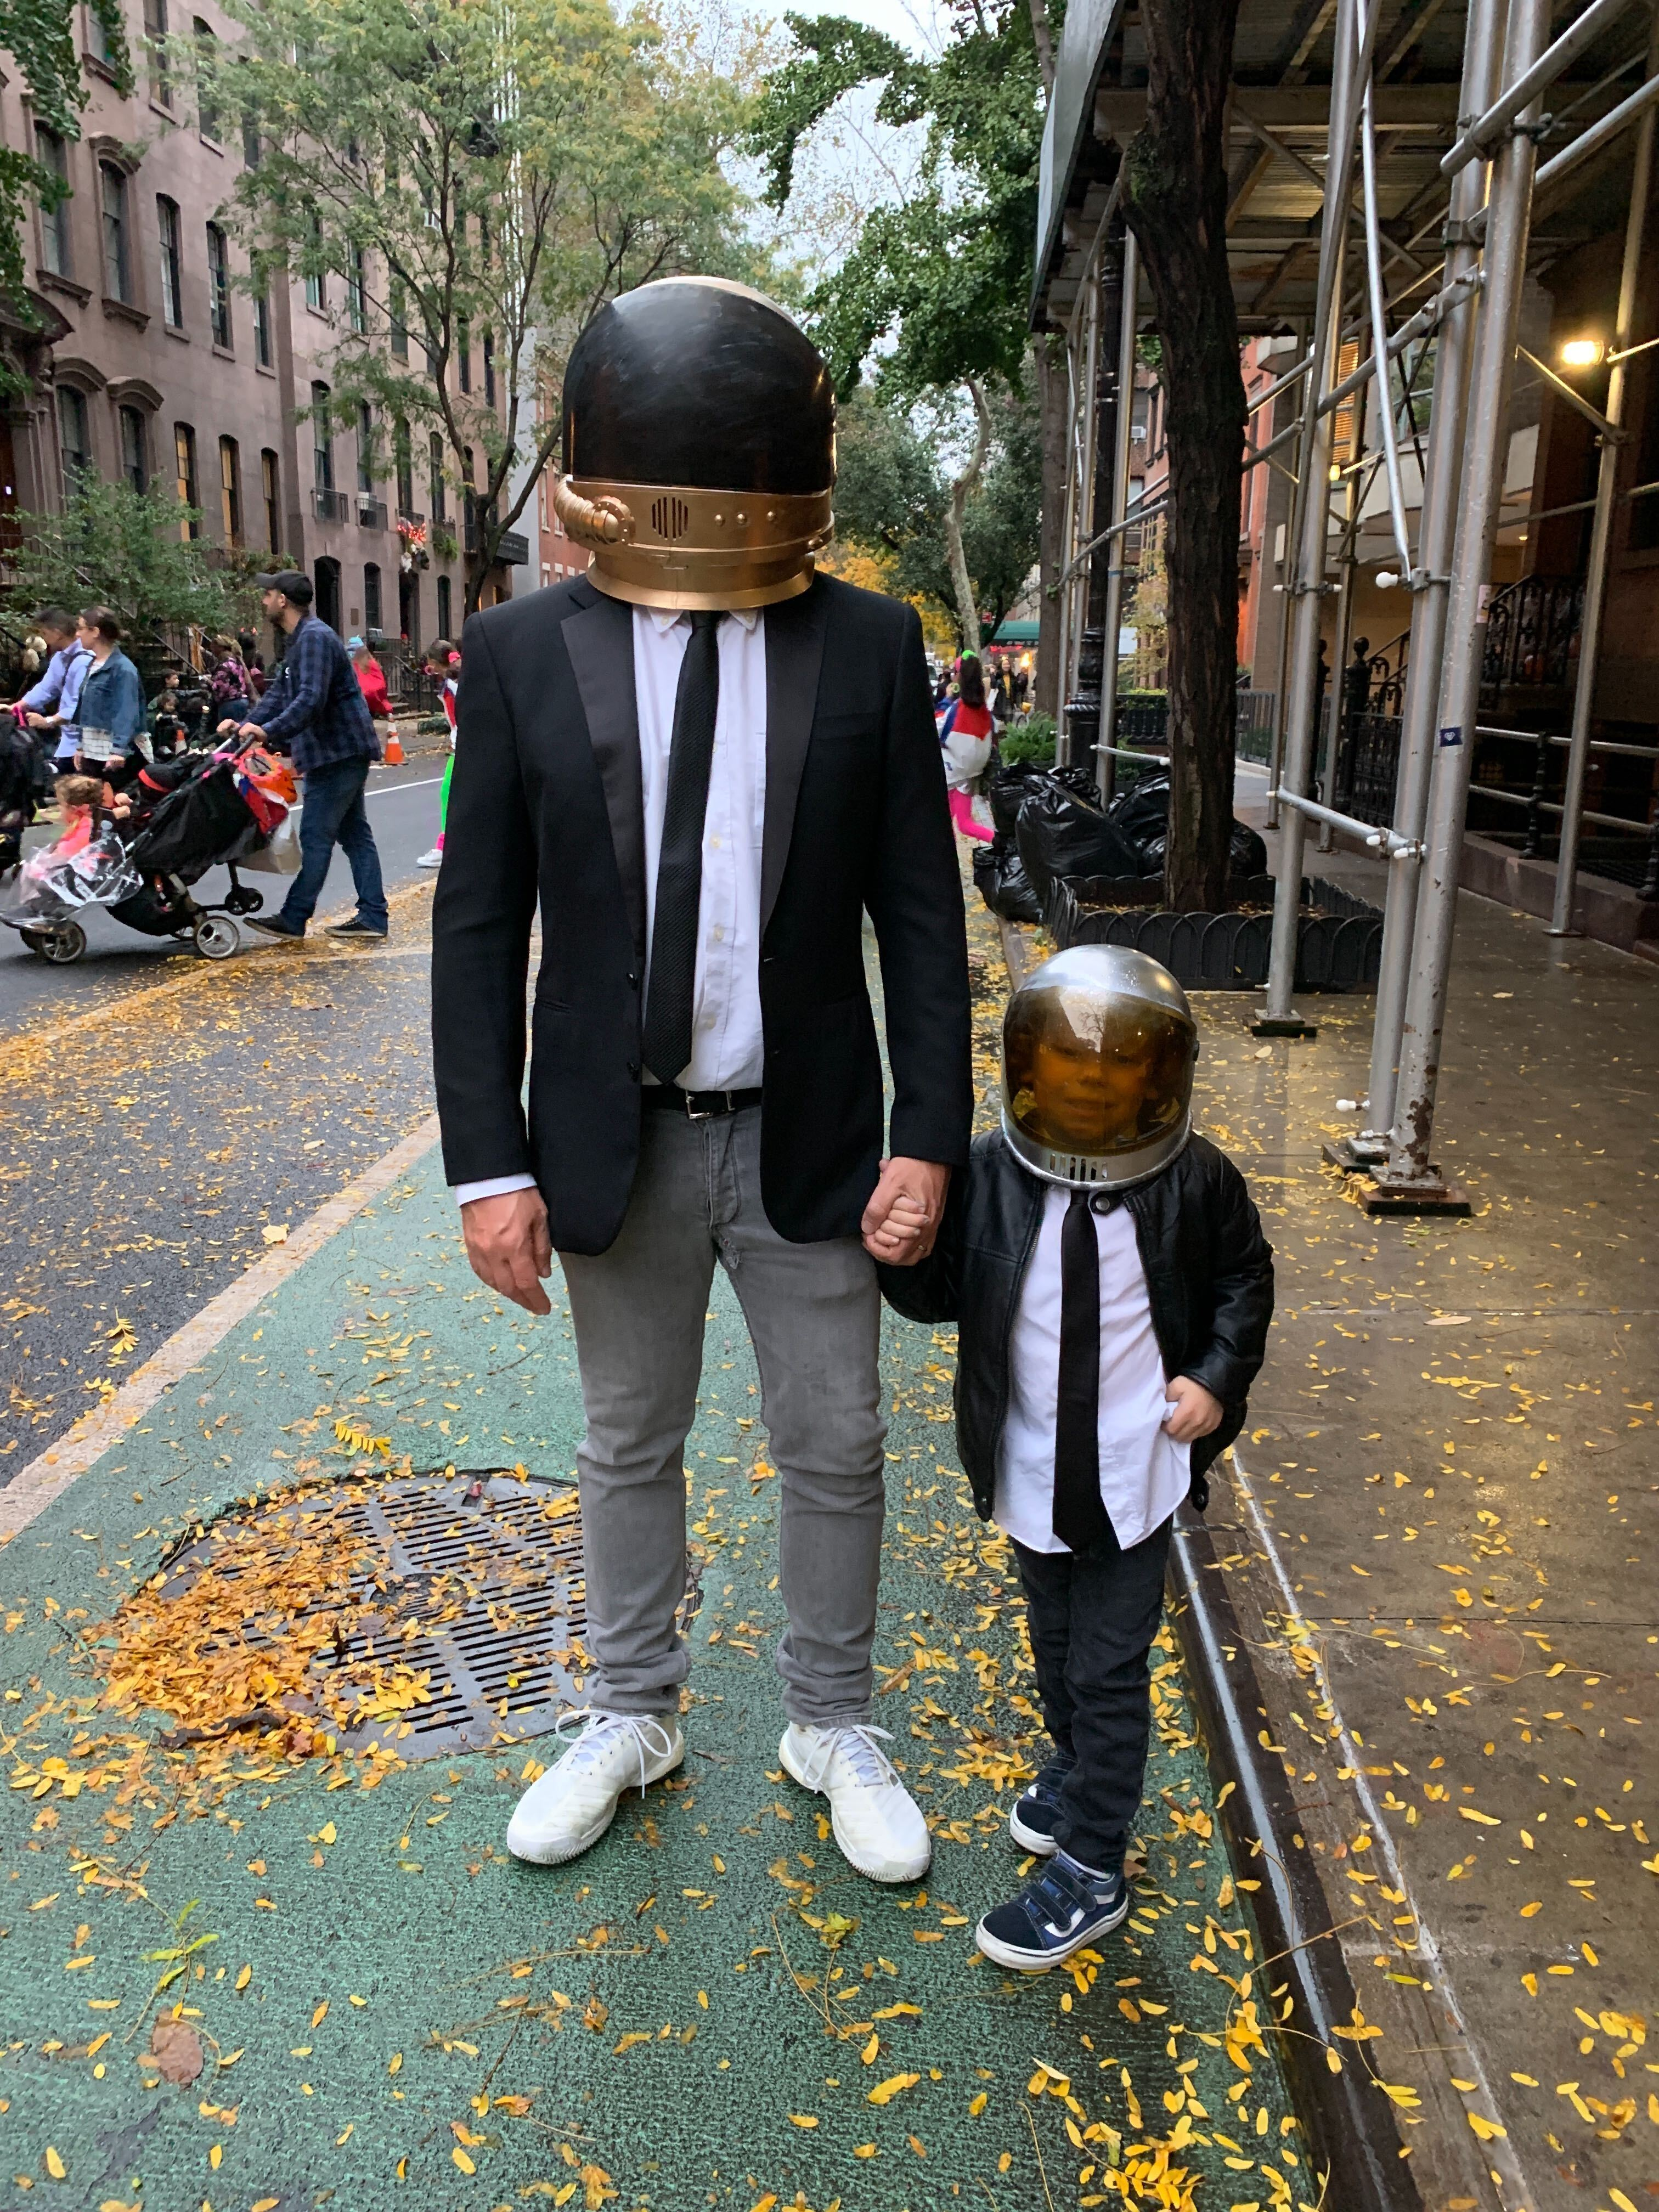 father and son in daft punk outfit